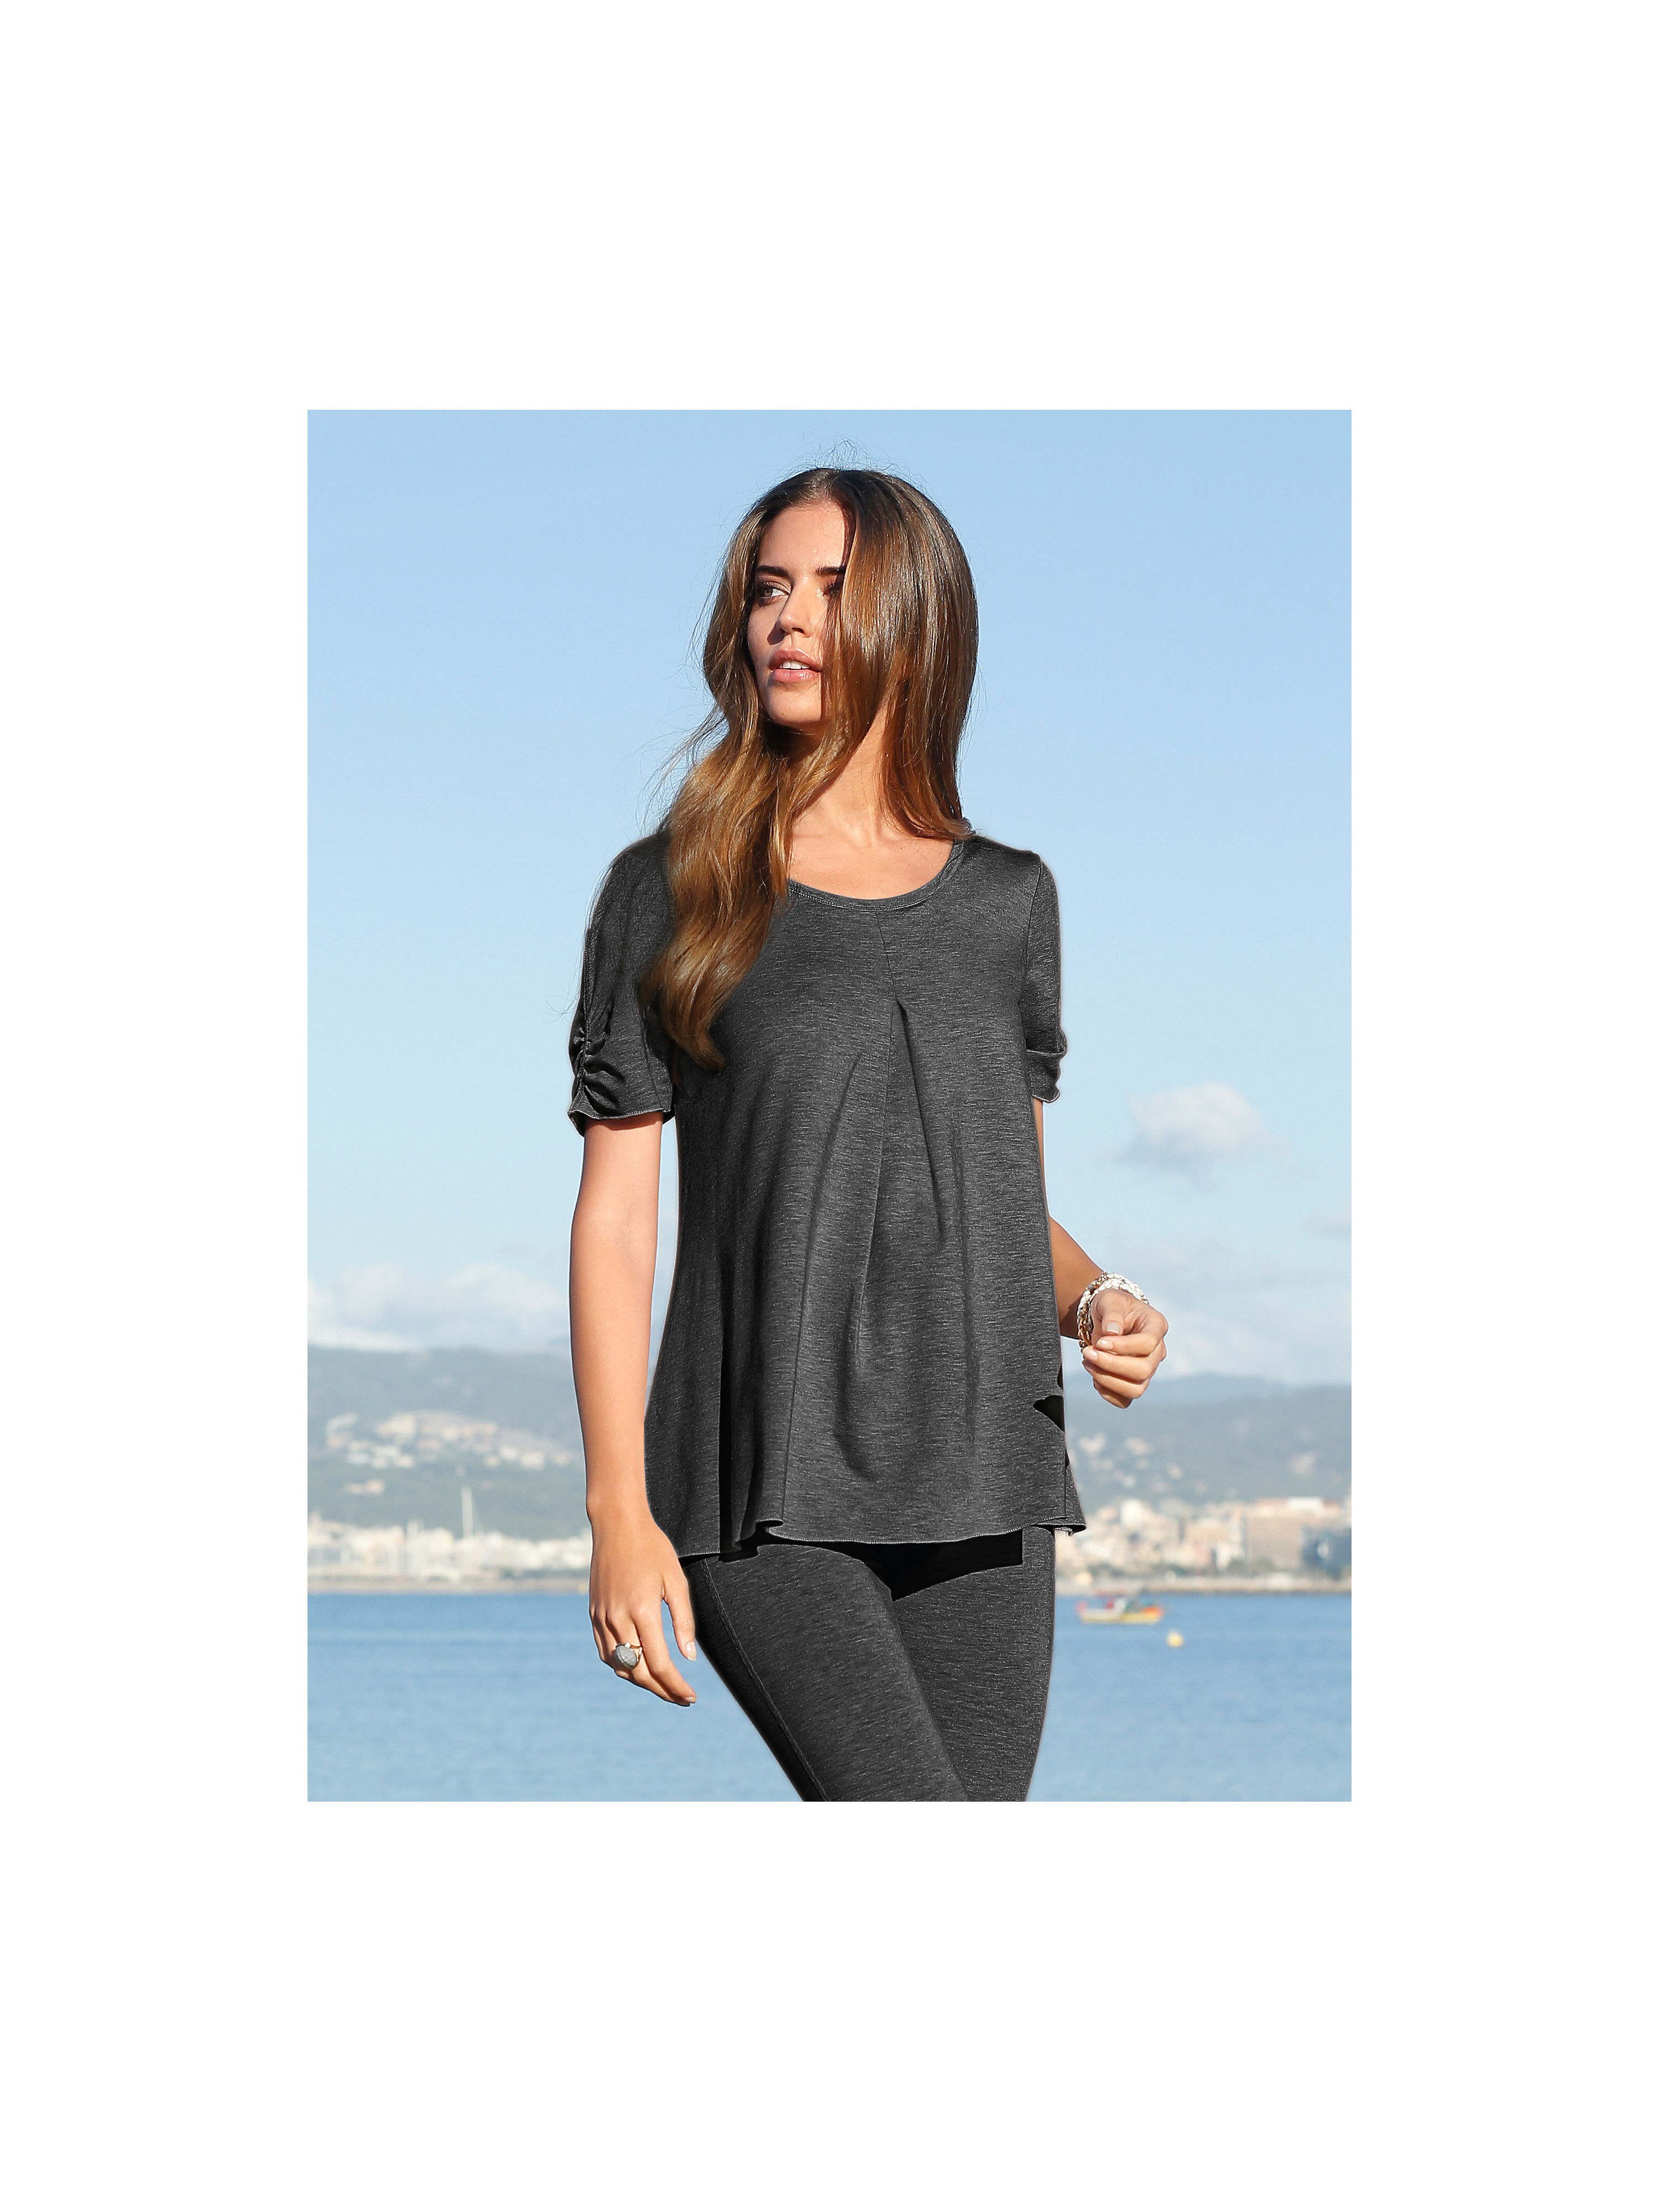 Round neck top from Peter Hahn grey